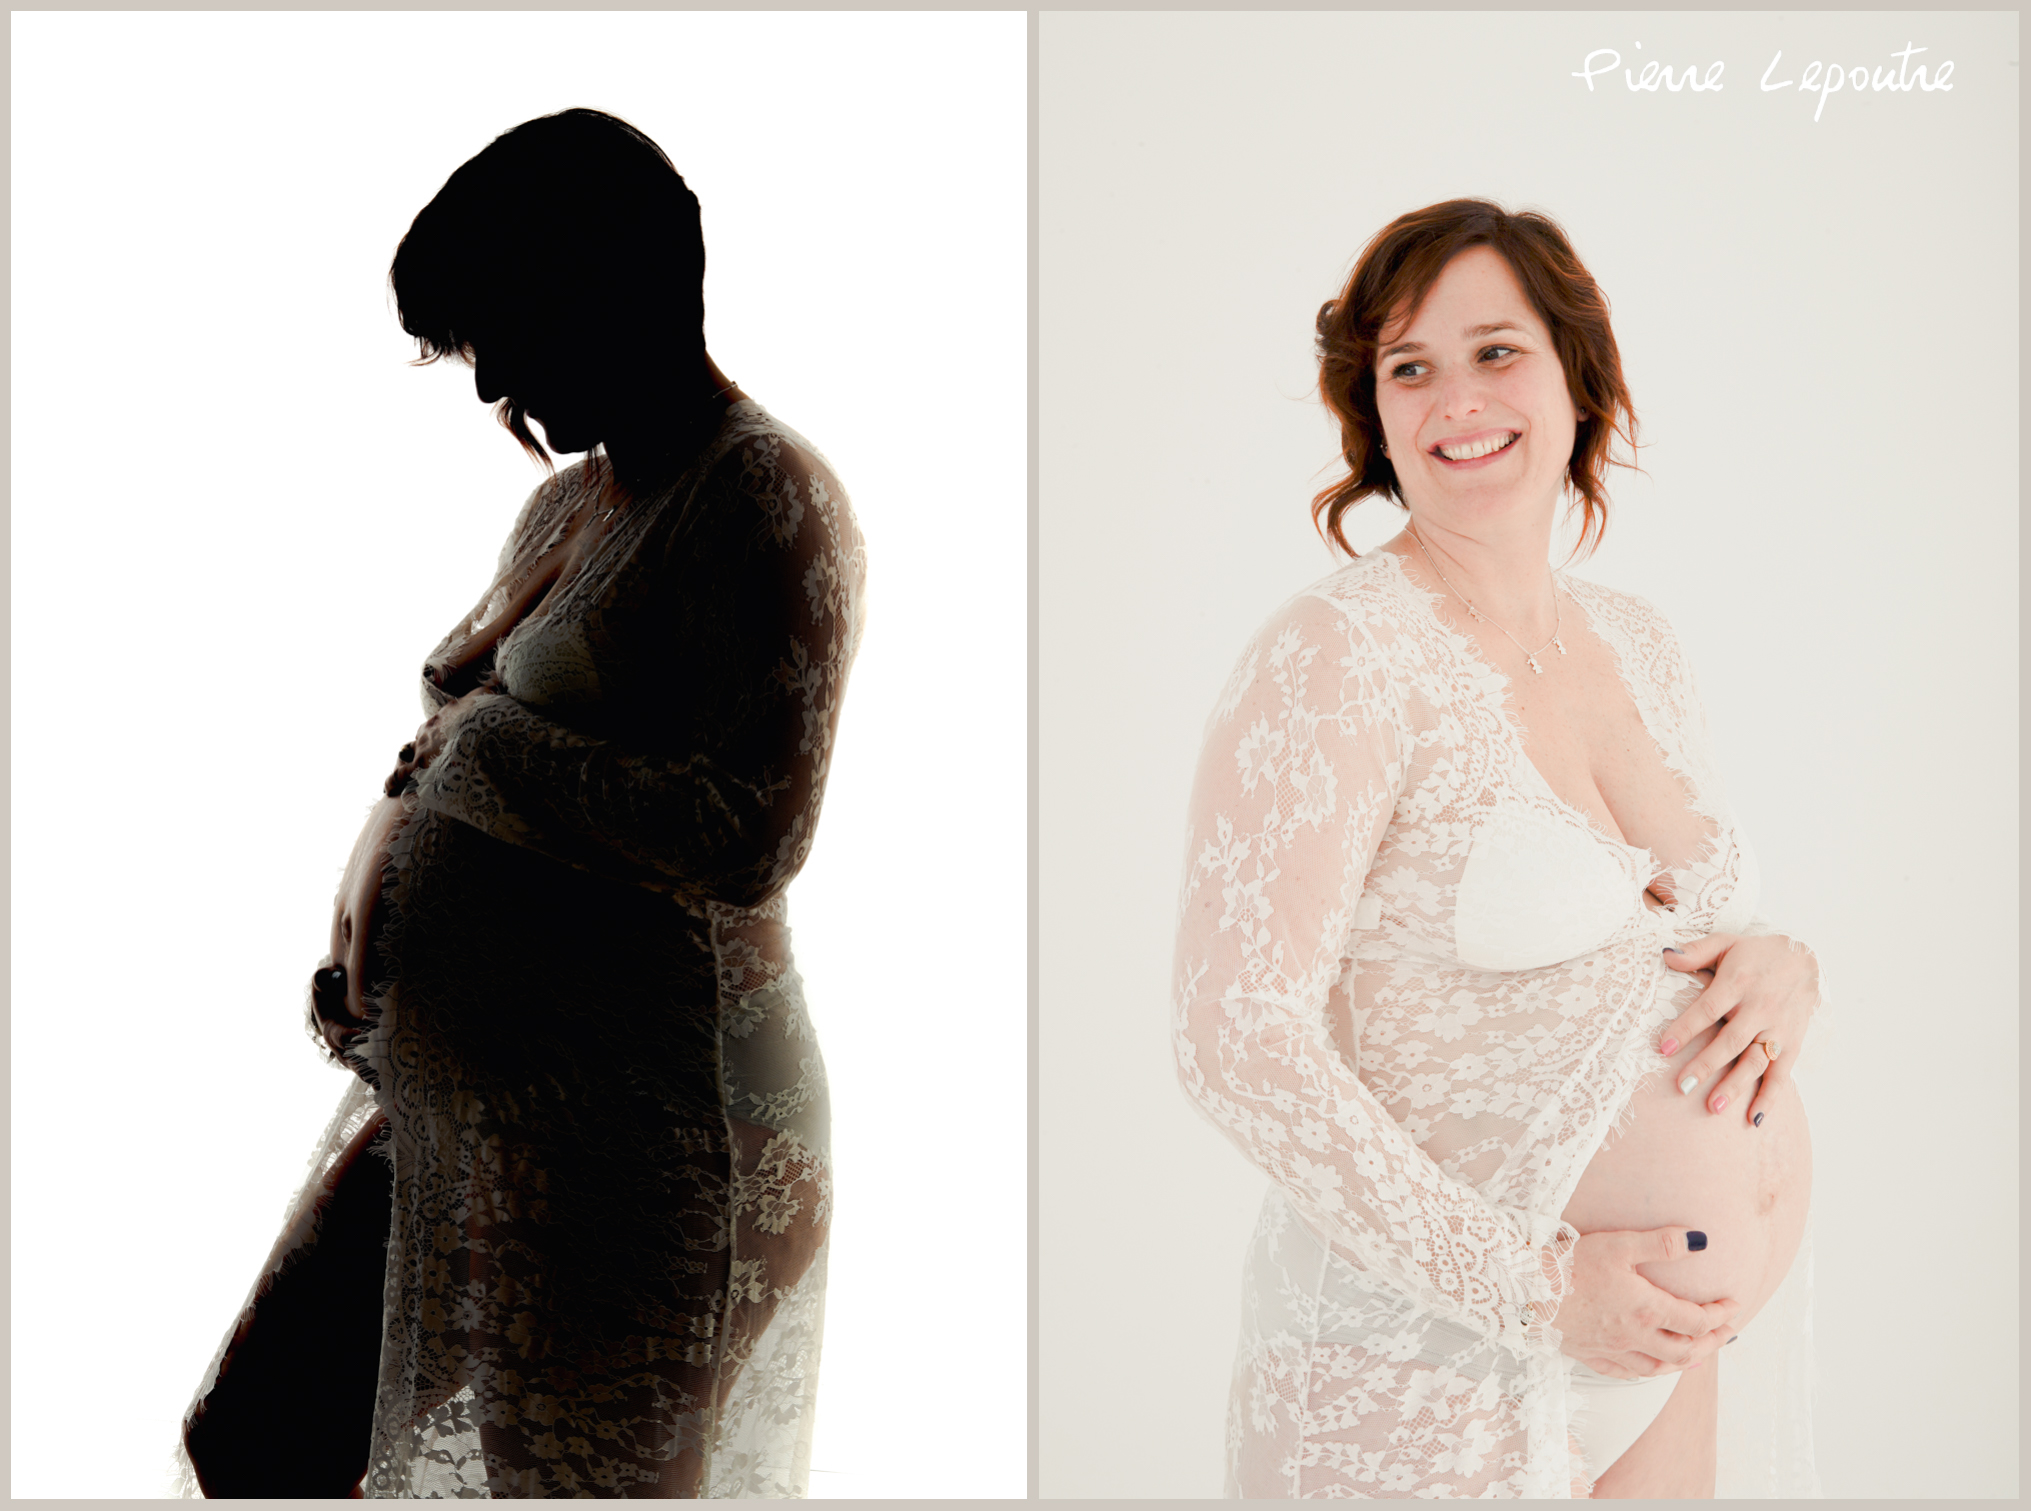 photographe naissance Chateaubourg